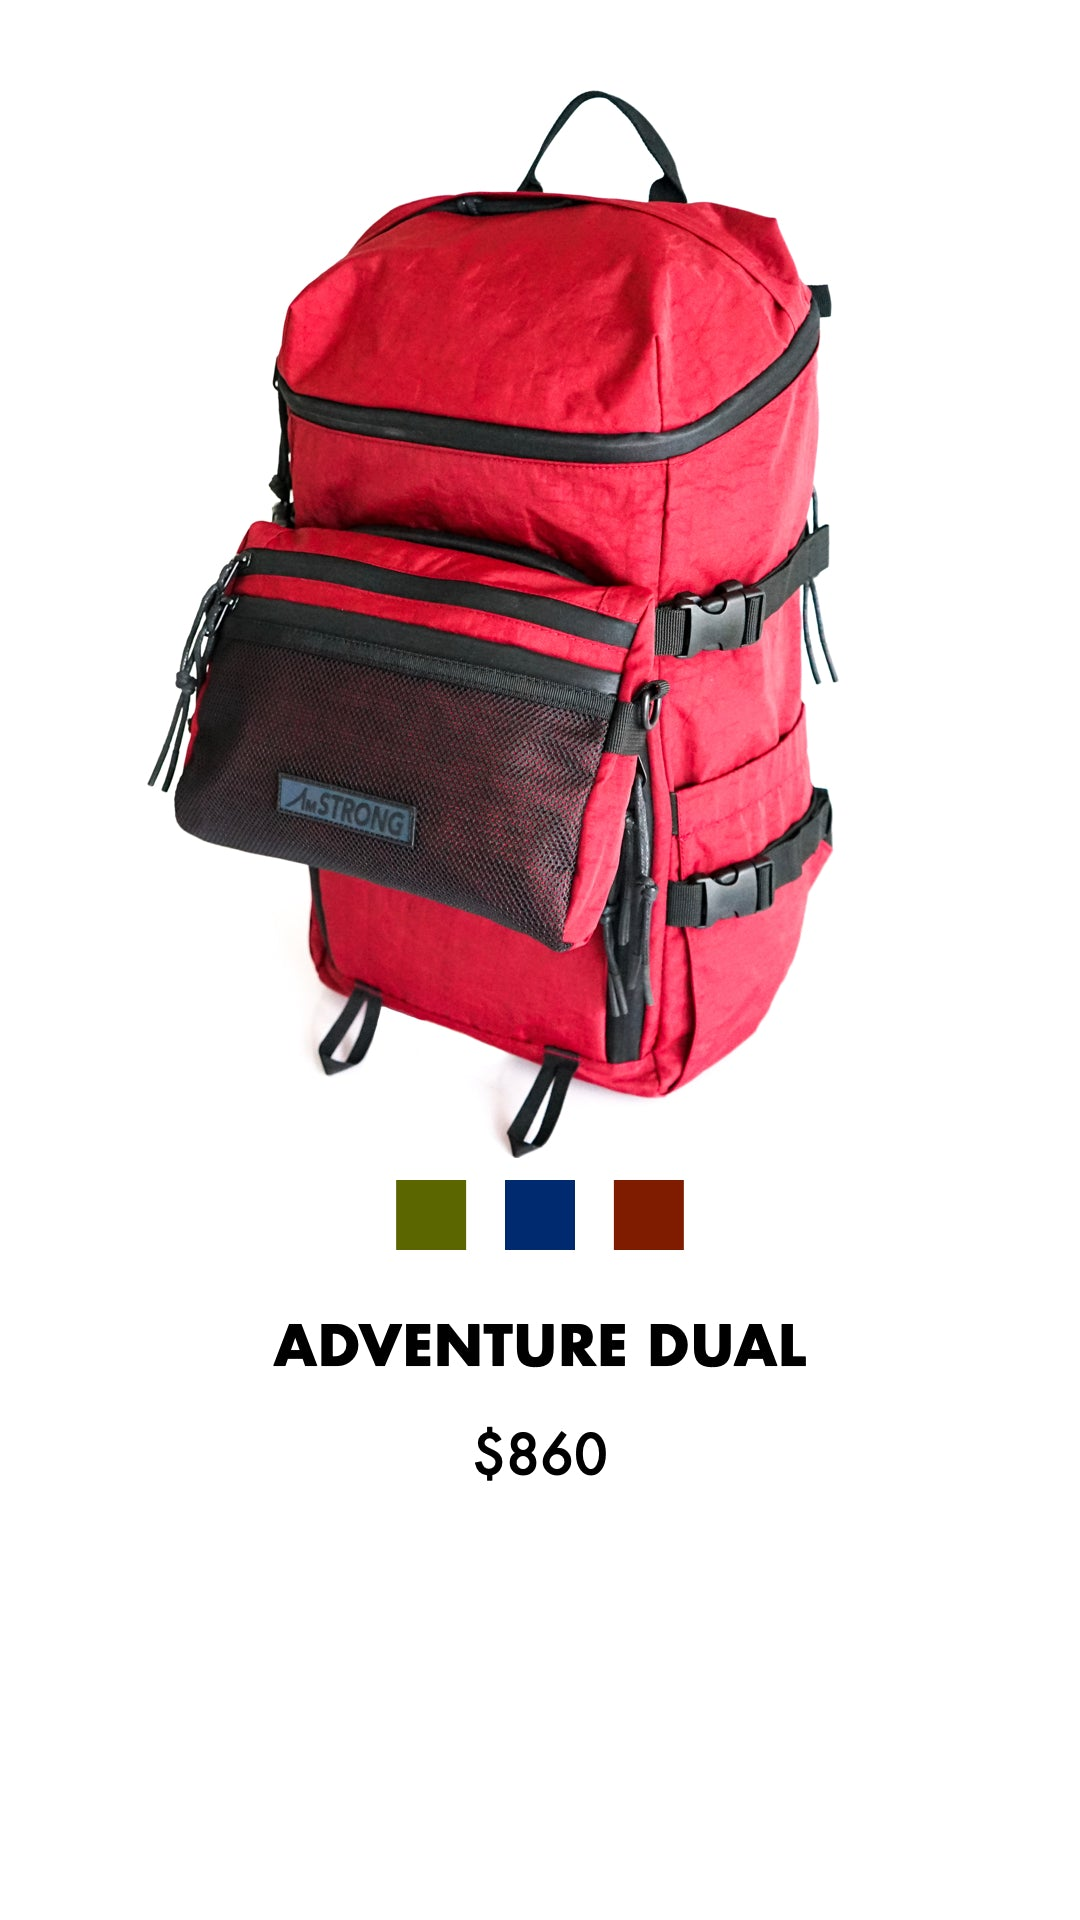 AmSTRONG | ADVENTURE DUAL